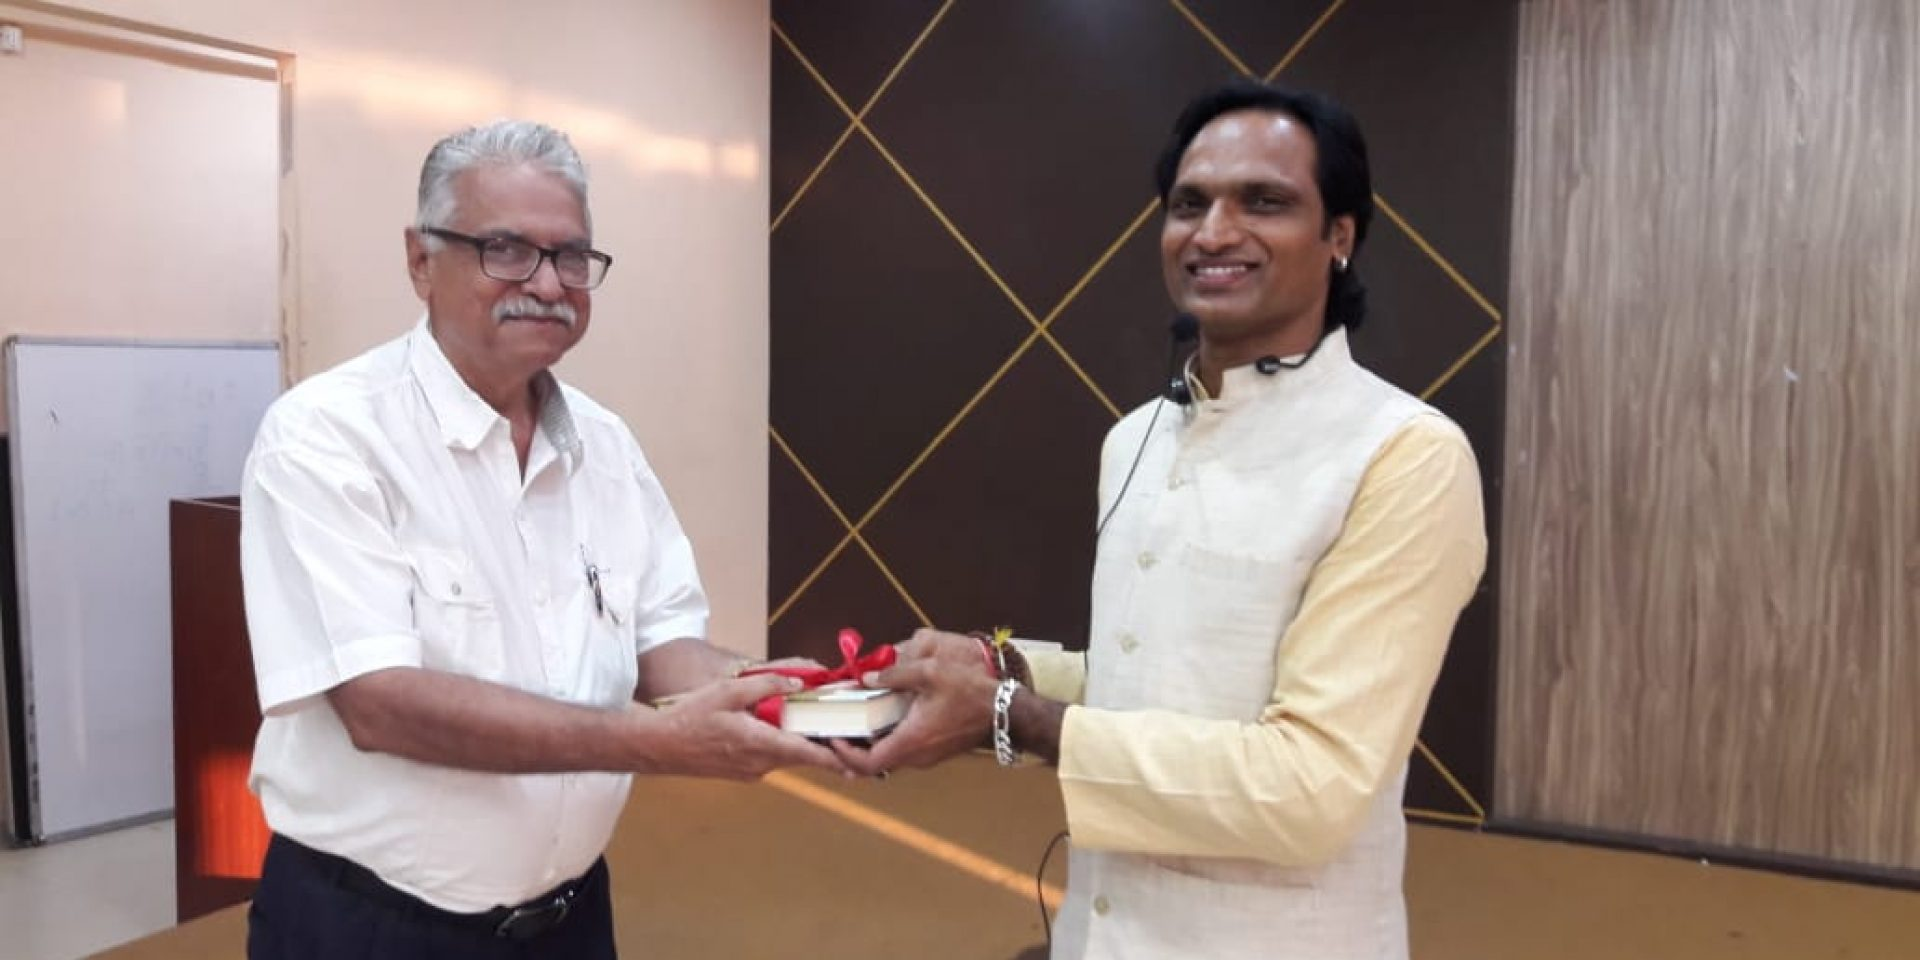 Goa Chamber invited Shri Amit Kumar on 15th February, 2019, who is a certified Yoga therapist, trainer and consultant to conduct One Hour FREE Yoga Awareness Workshop.